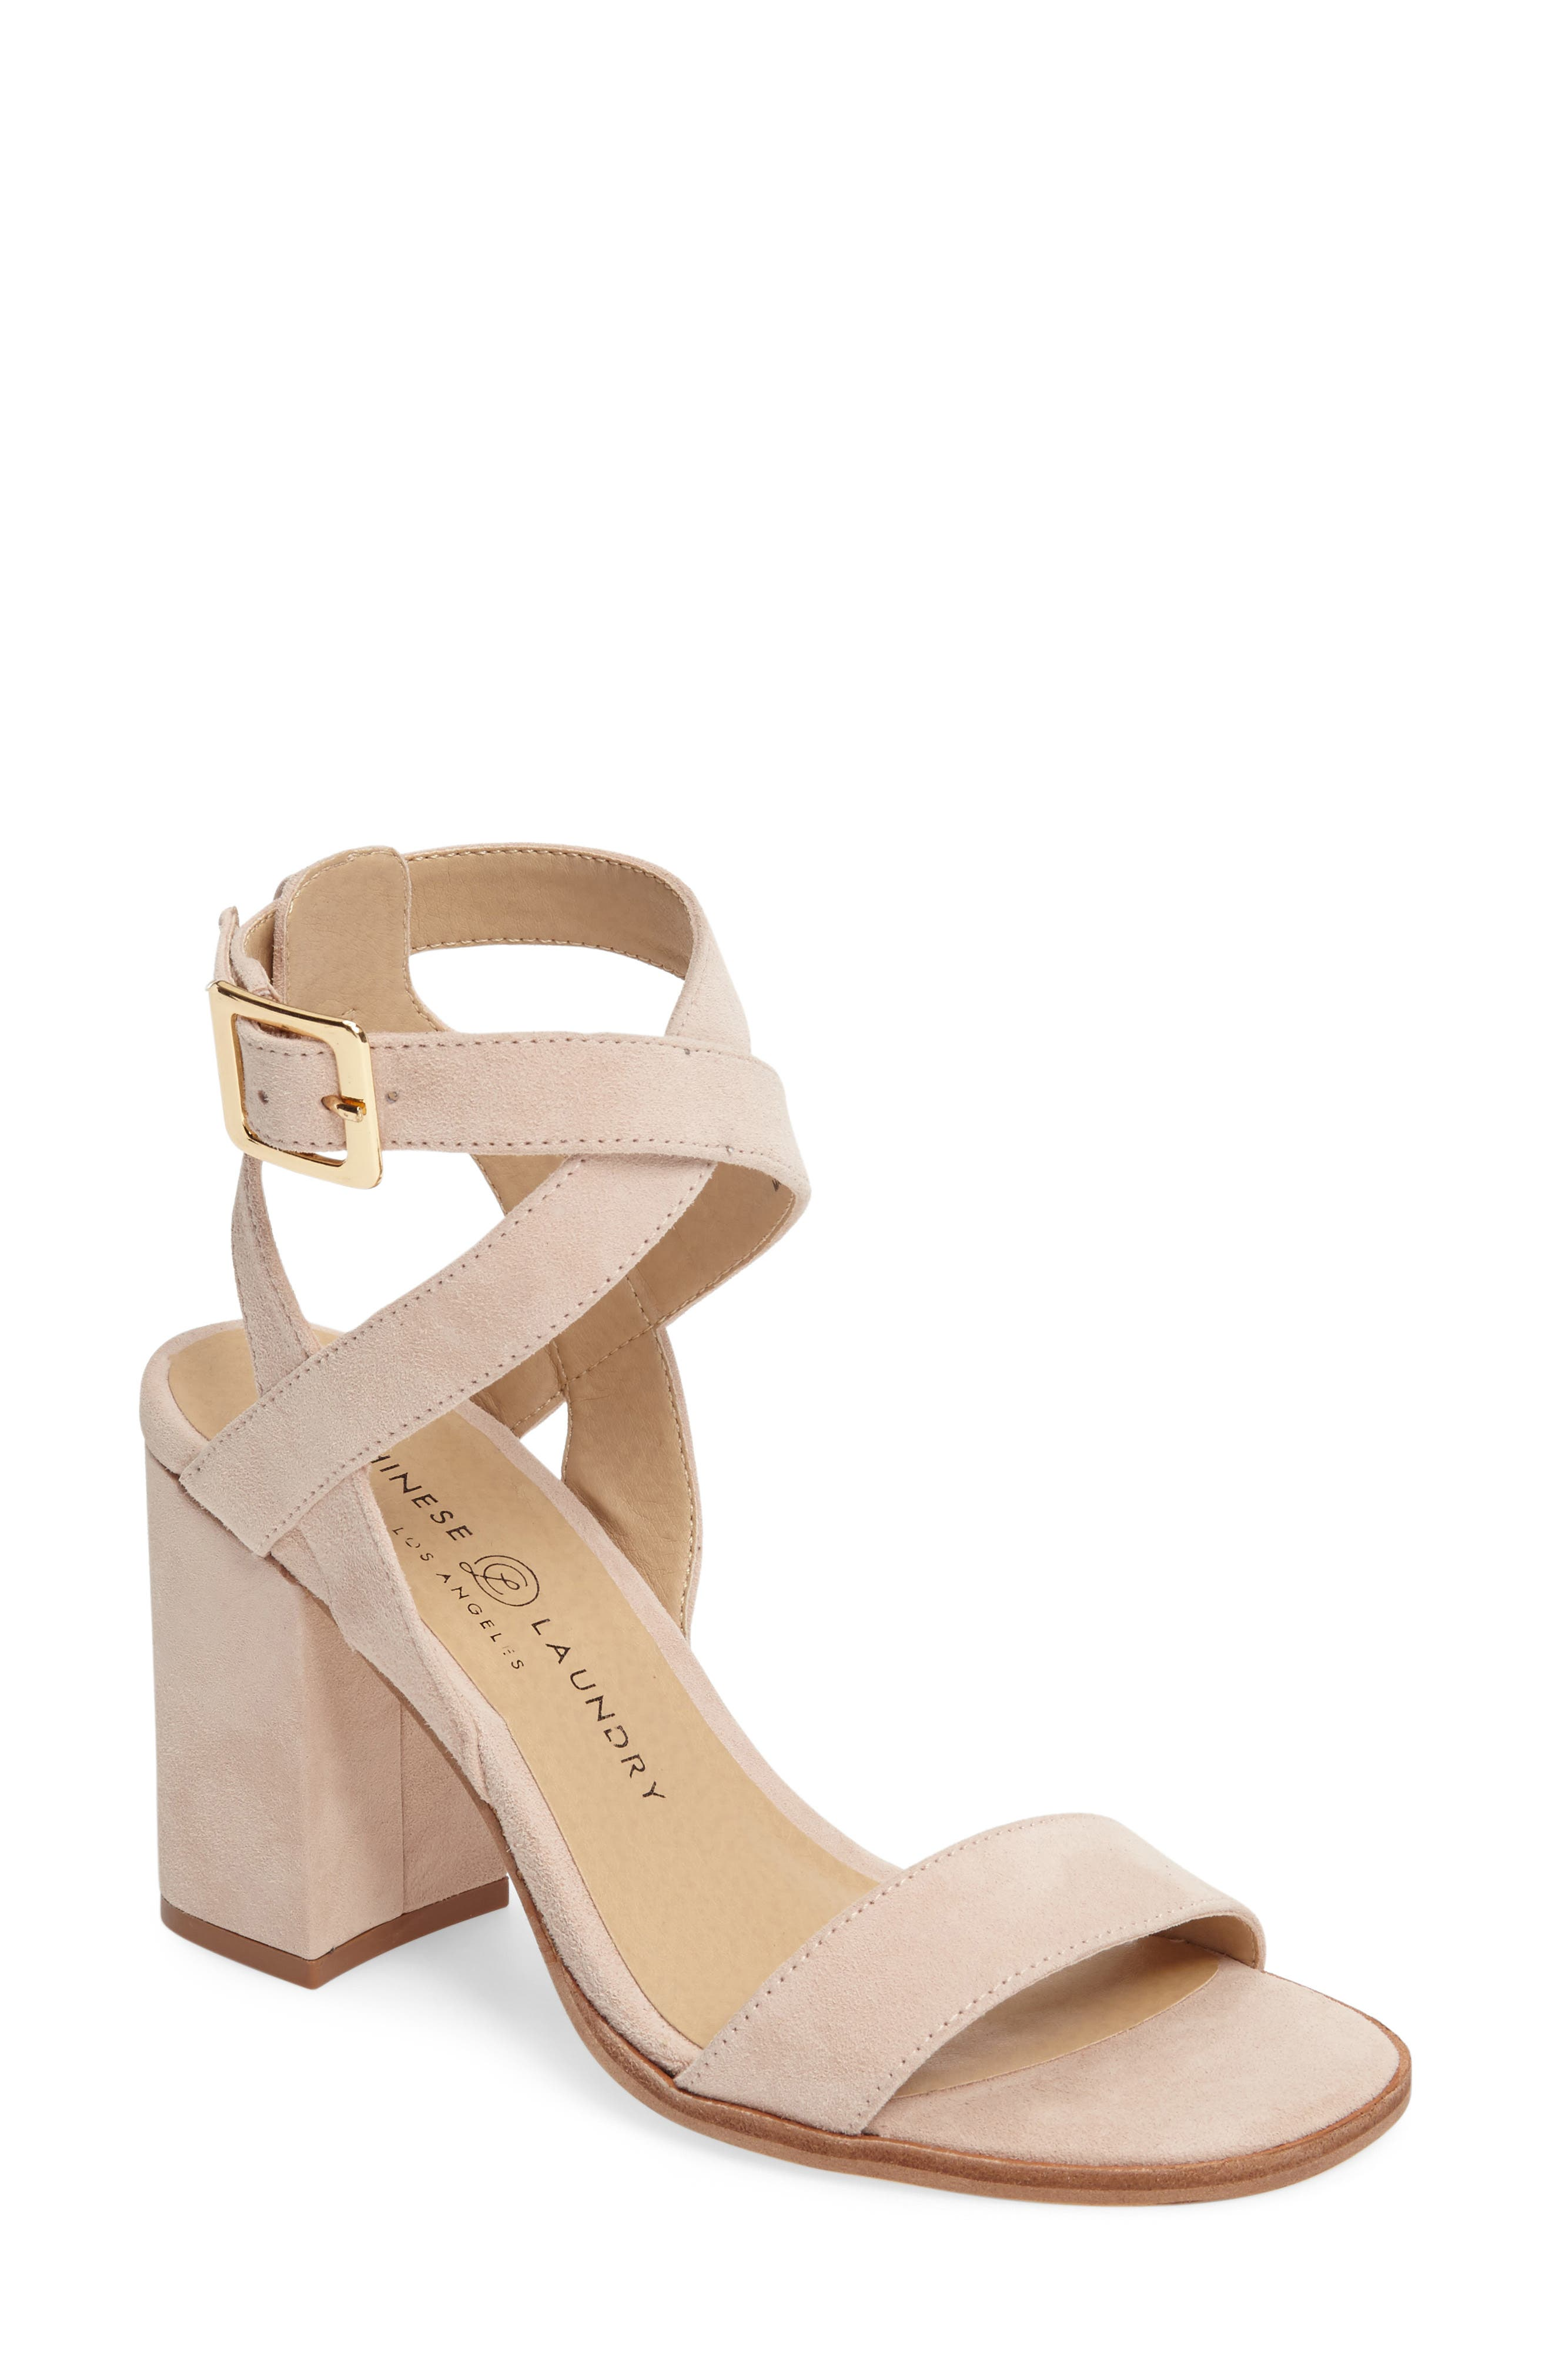 Alternate Image 1 Selected - Chinese Laundry Sitara Ankle Strap Sandal (Women)